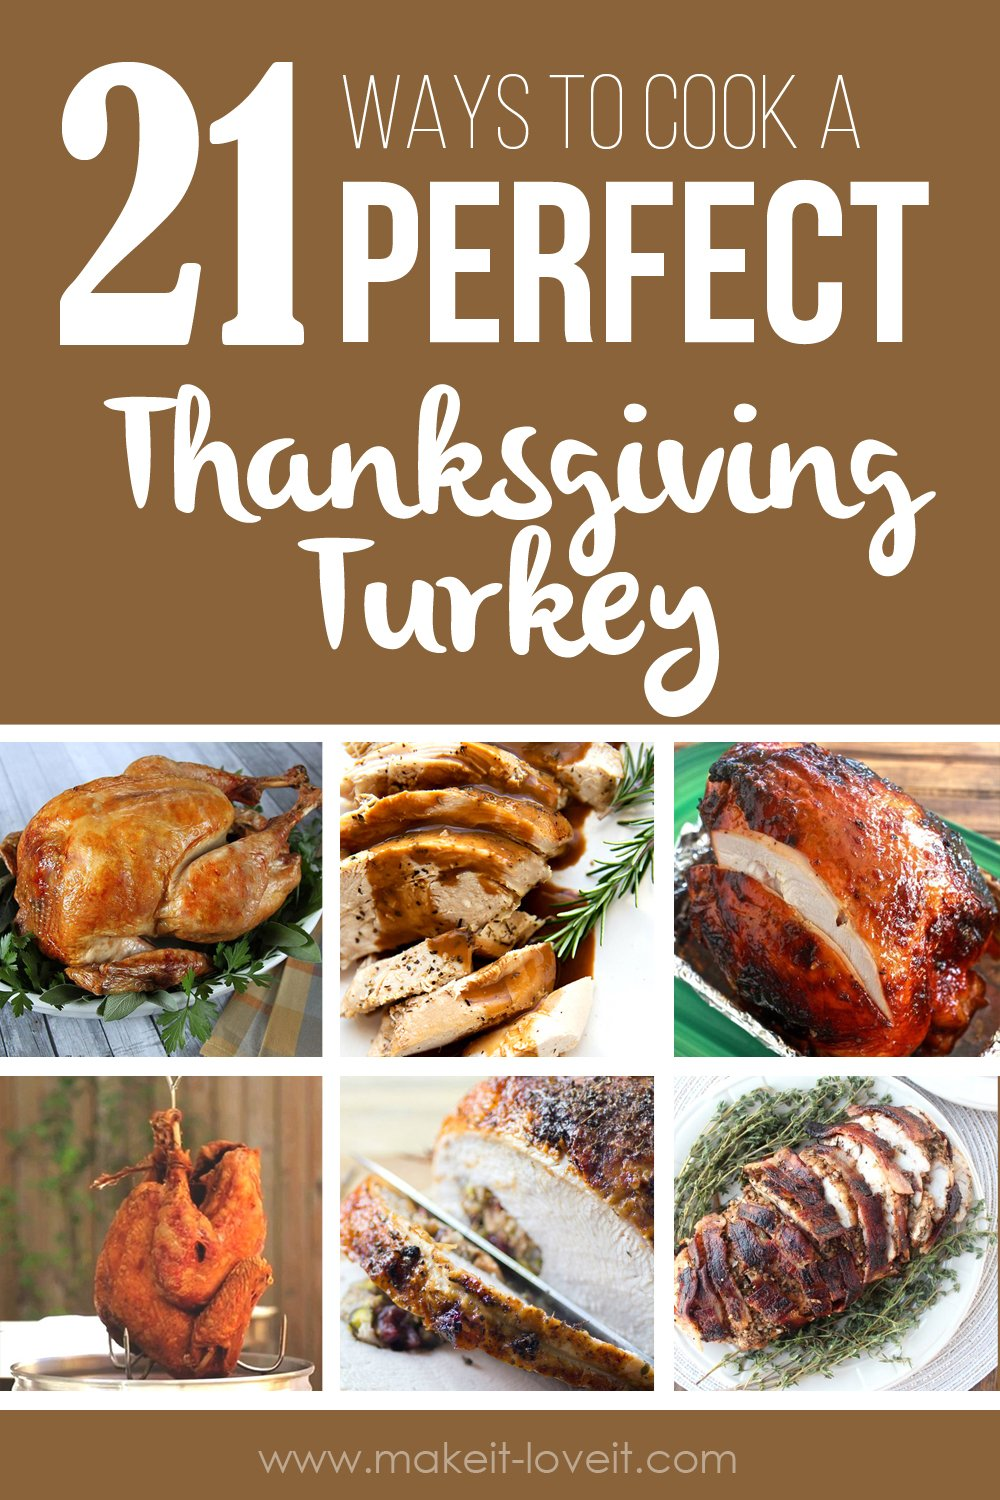 21 Different Ways To Cook A PERFECT Thanksgiving Turkey